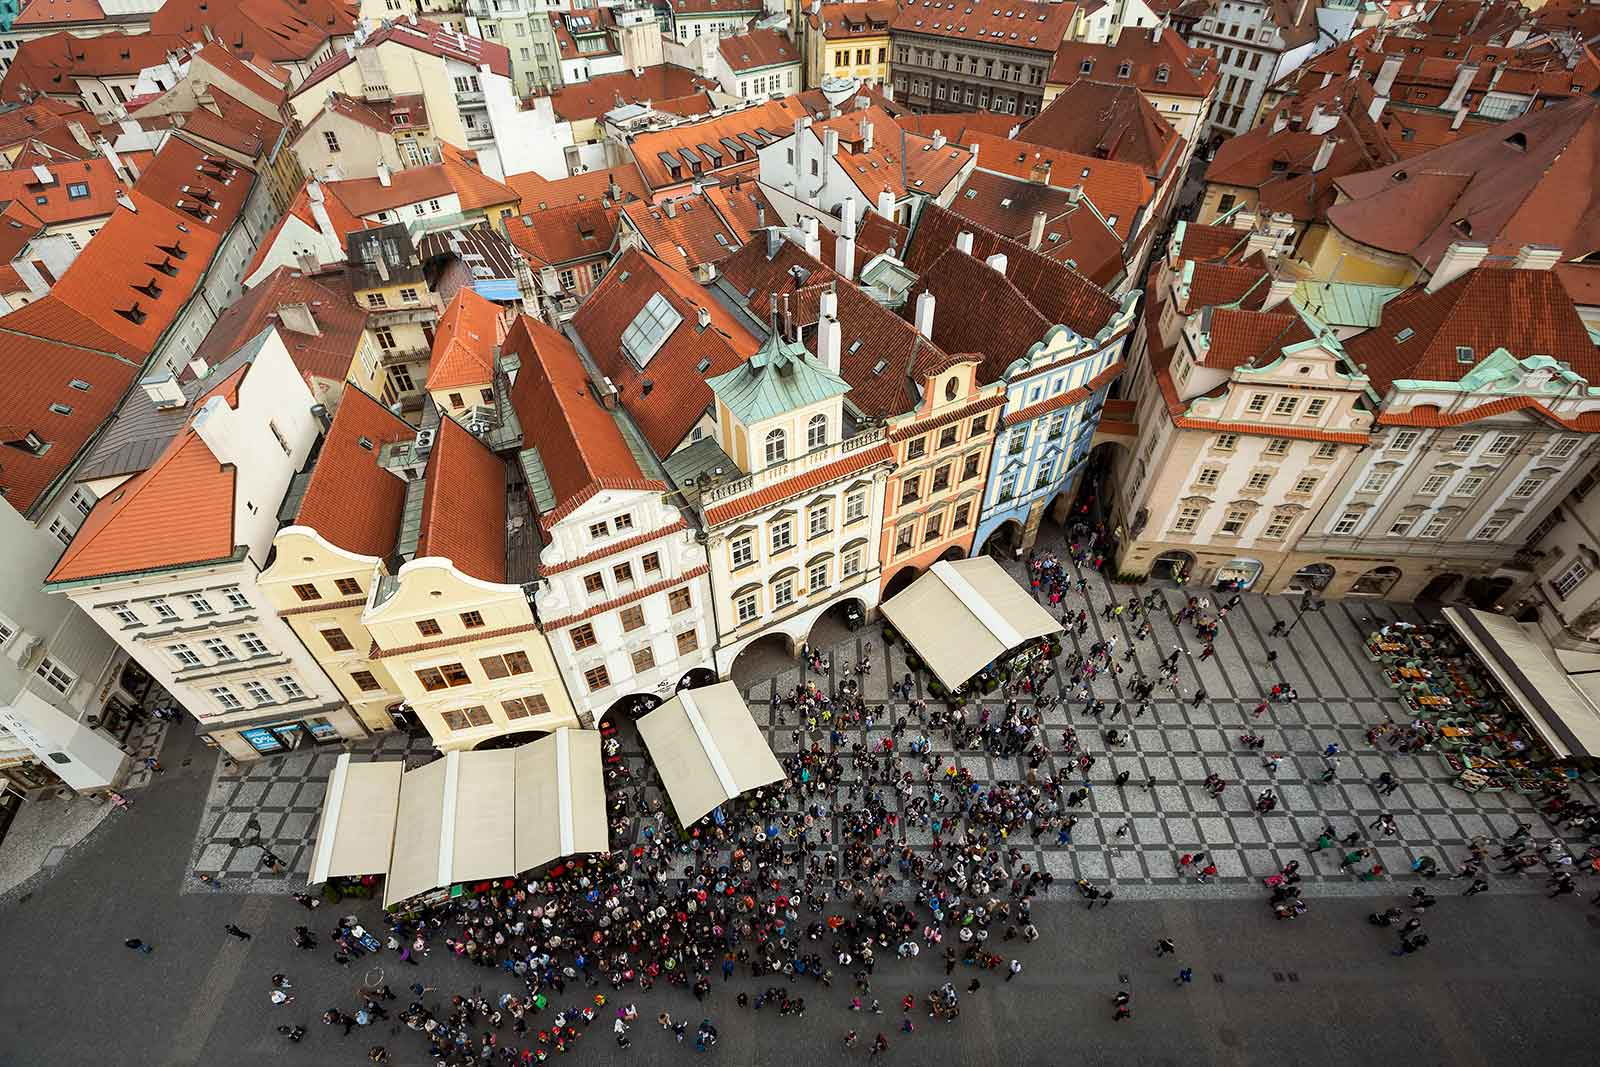 Be sure to climb the Old Town Hall Tower in Prague for a stunning view over the square.